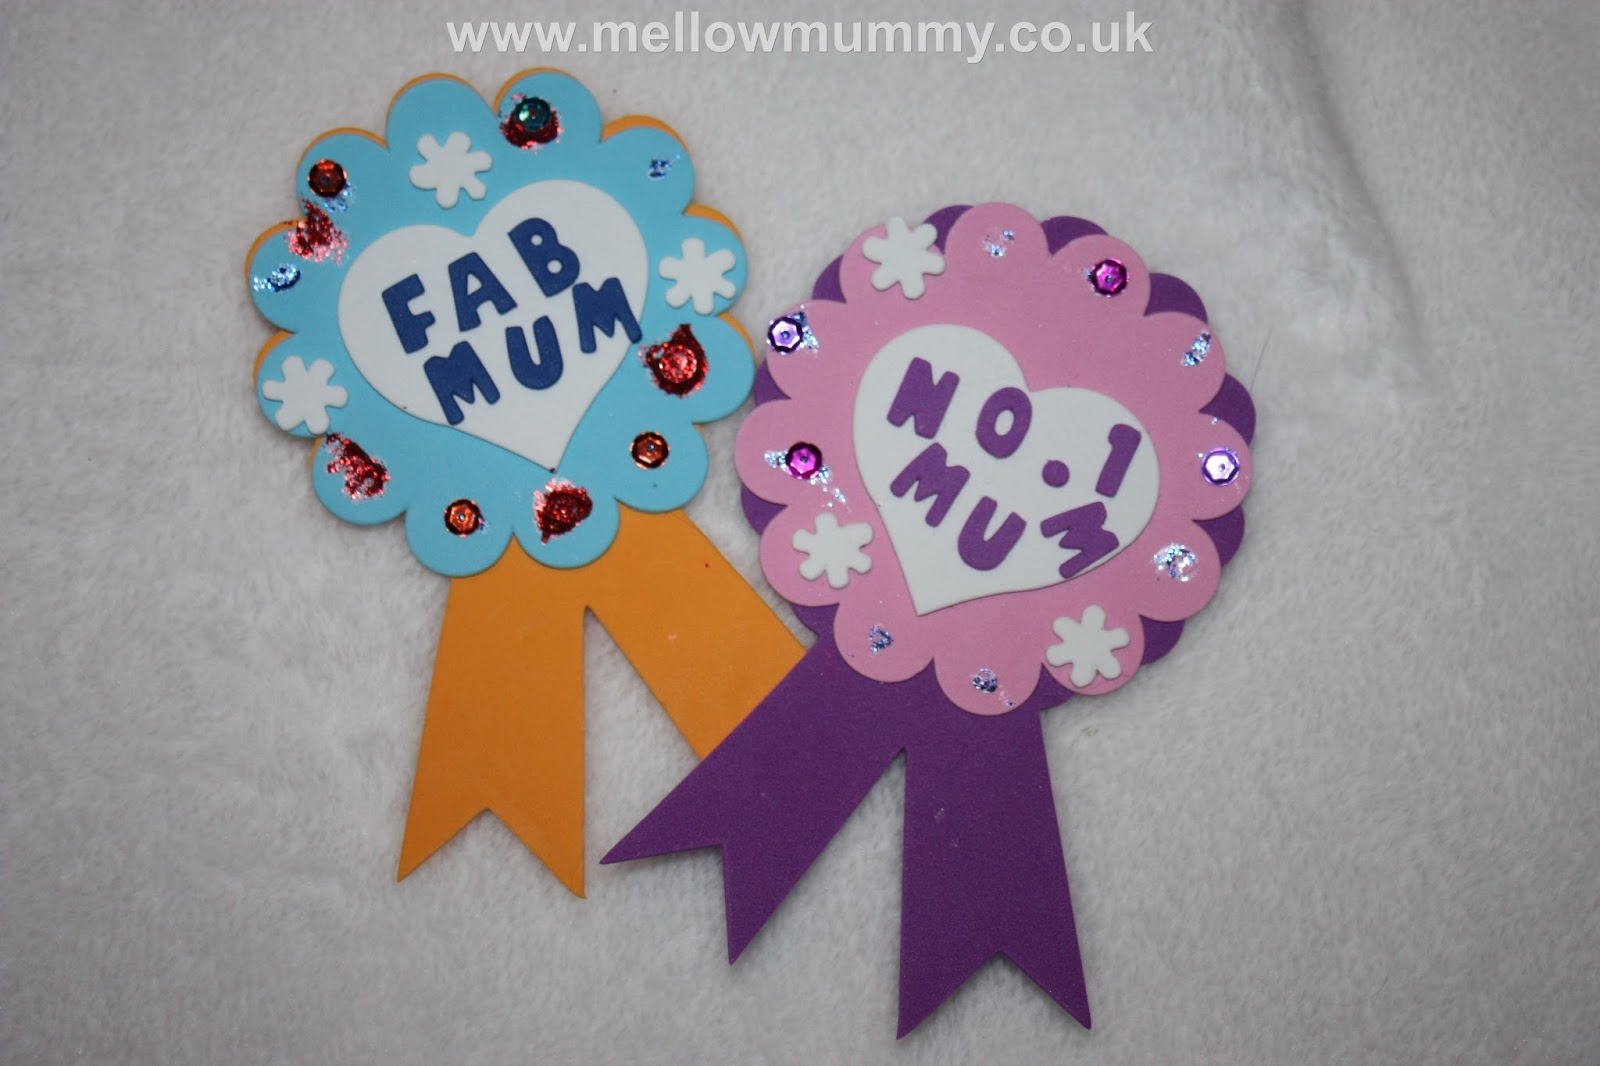 Mellow Mummy Mothers Day Craft Activities For Kids Taking Life As